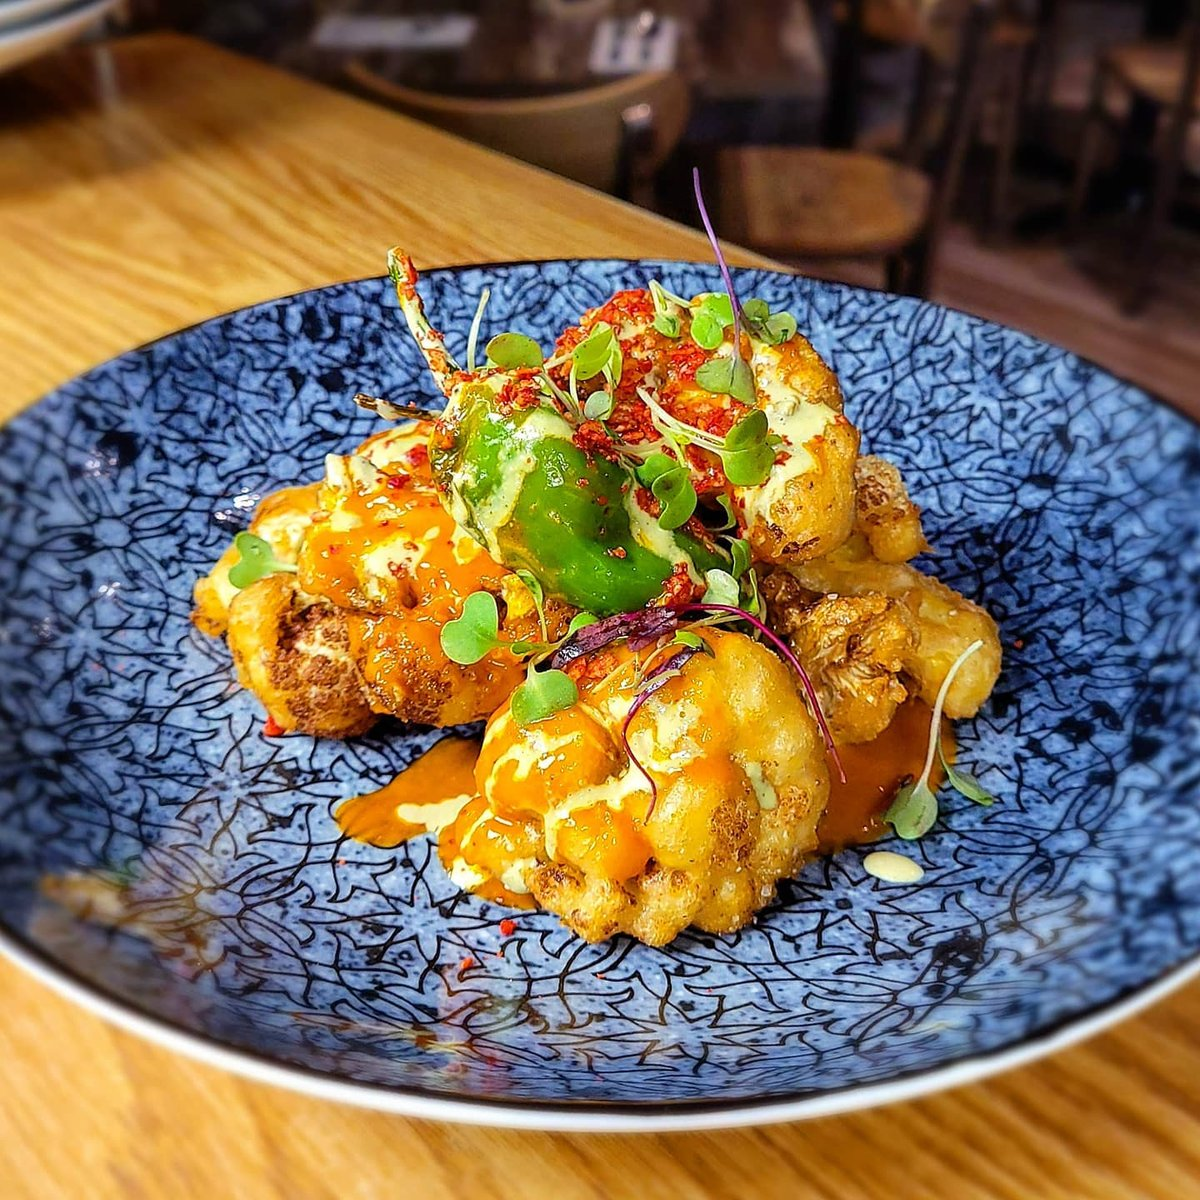 Fresh Origins On Twitter Buffalo Cauliflower By Chef John Creger Chefjohncreger At Fuisinebaltimore Got Us Like Eatlocal Supportsmallbusiness Saverestaurants Https T Co Kzijj1dz5t